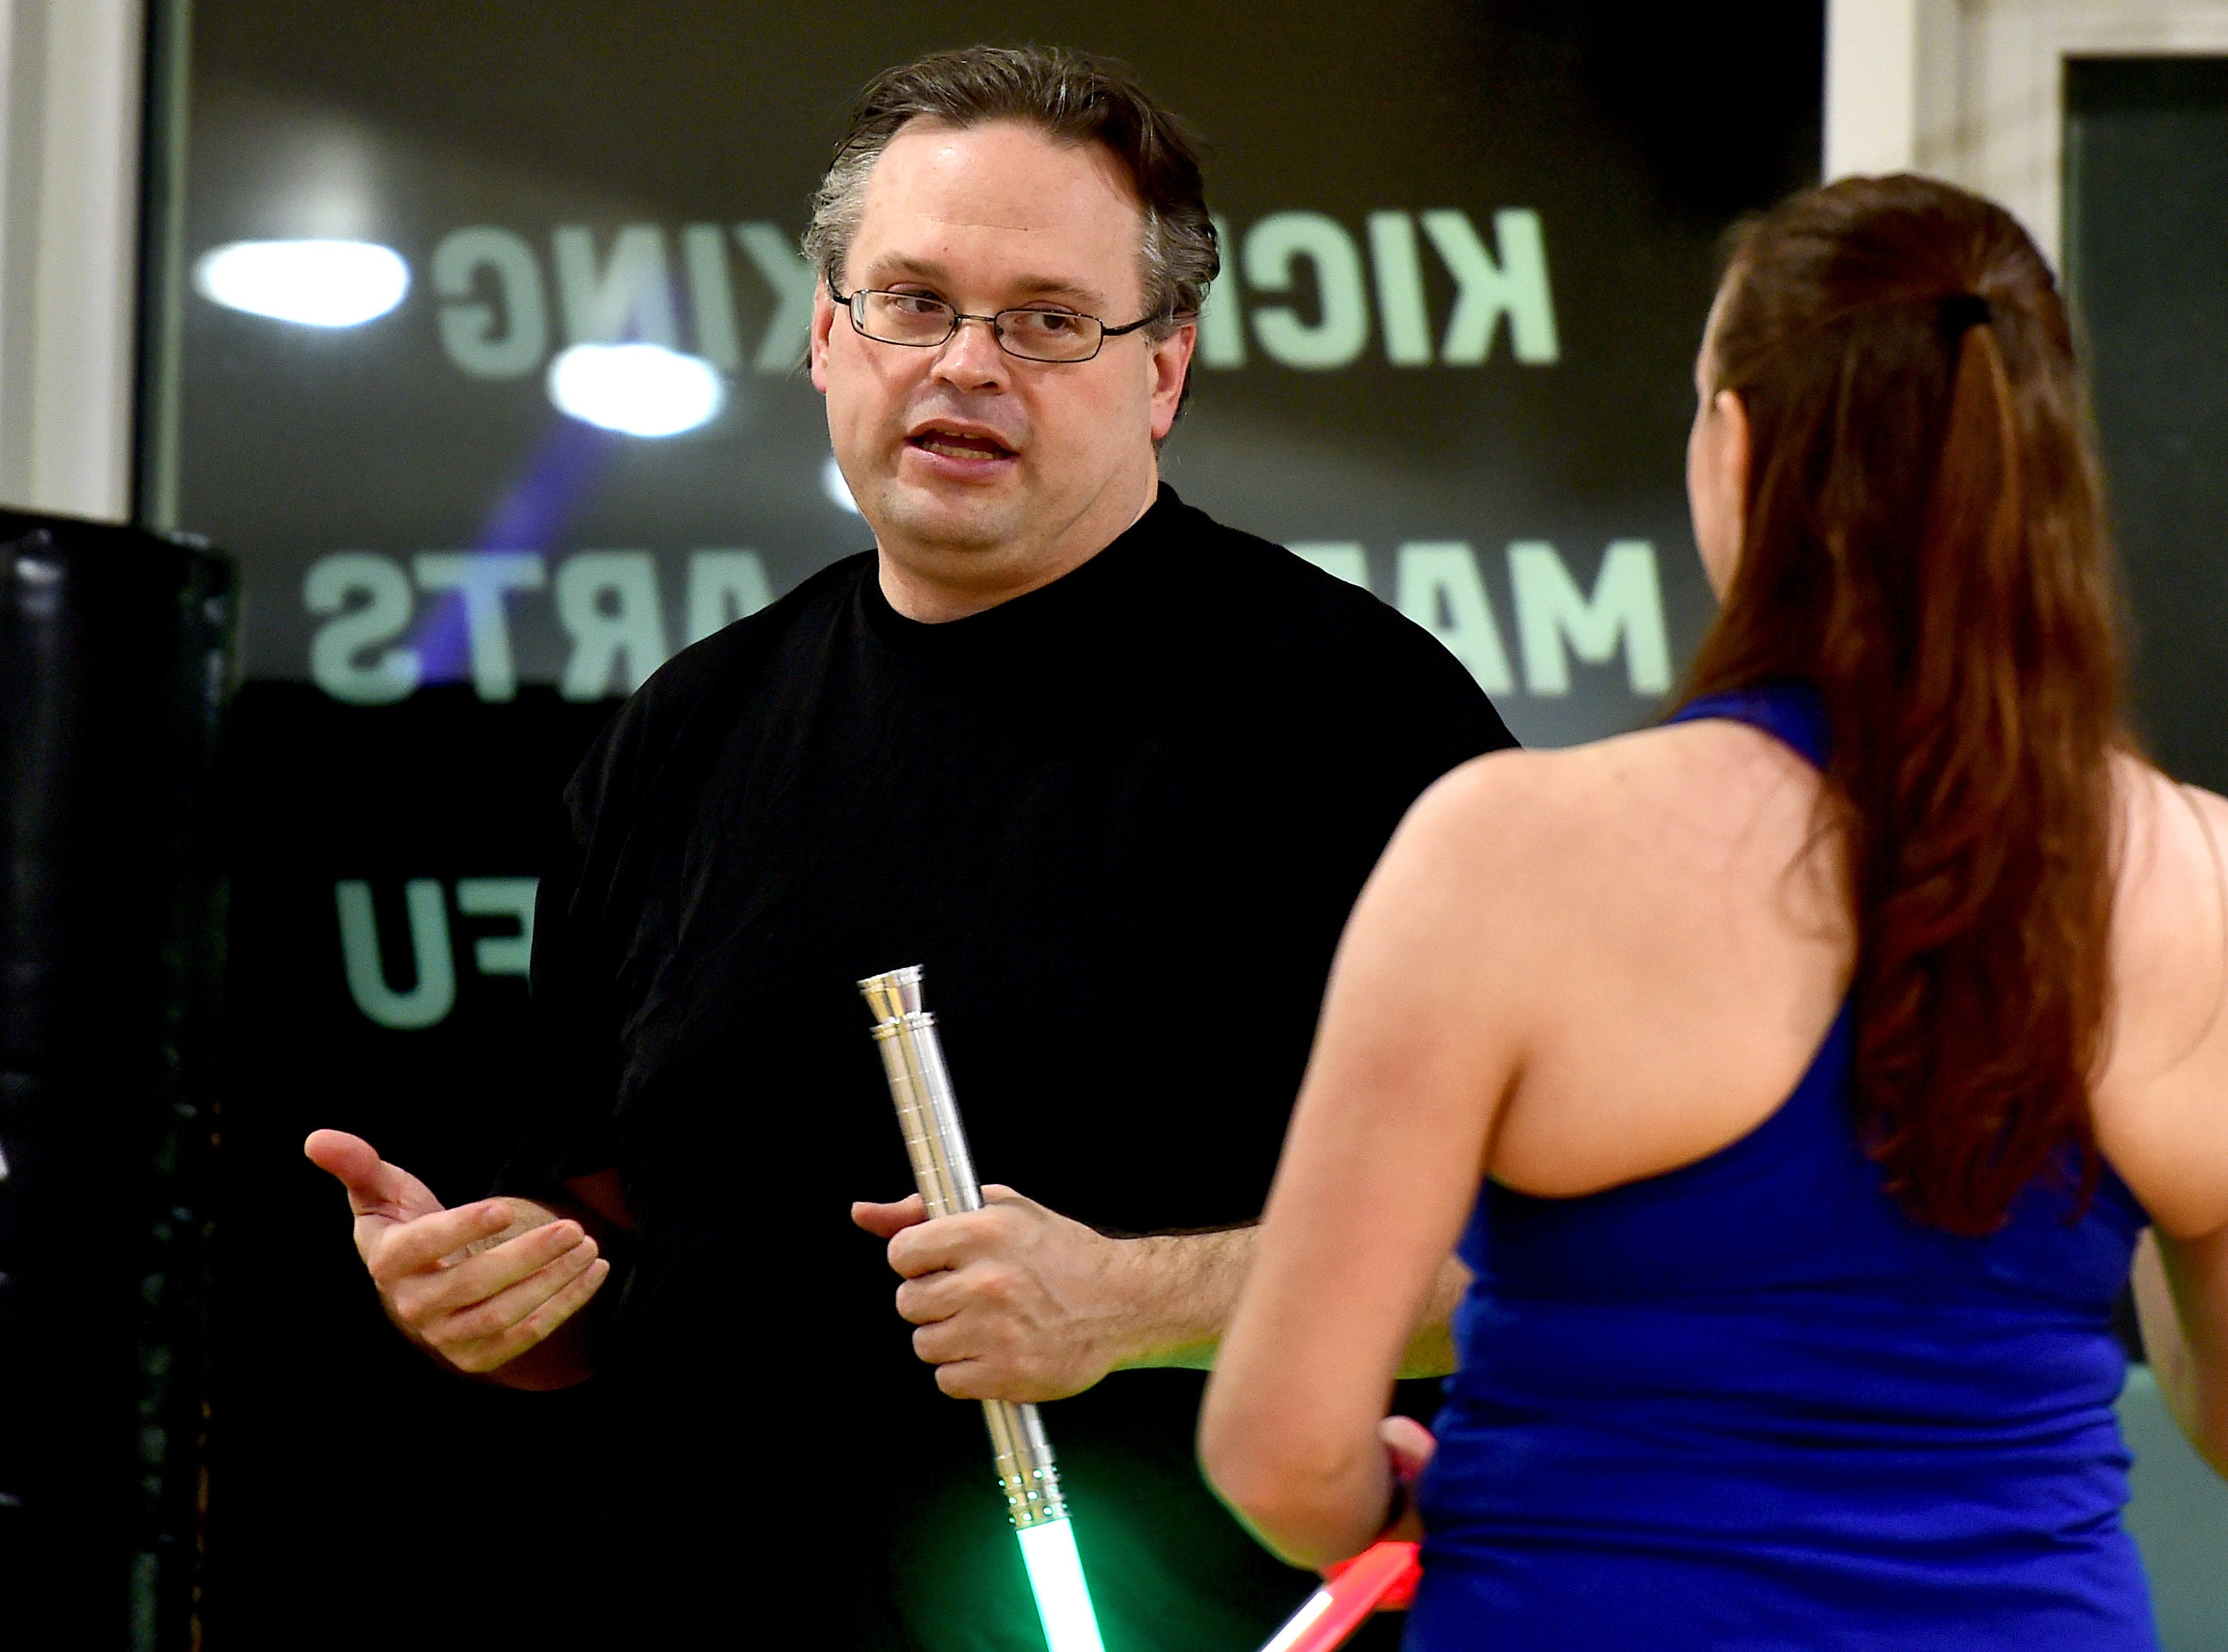 Ithaca Sabers instructor Ben Judkins works with Sarah Ridenour of Danby during the group's weekly lightsaber combat session at Centerline Fitness & Martial Arts in Ithaca.  February 4, 2019.